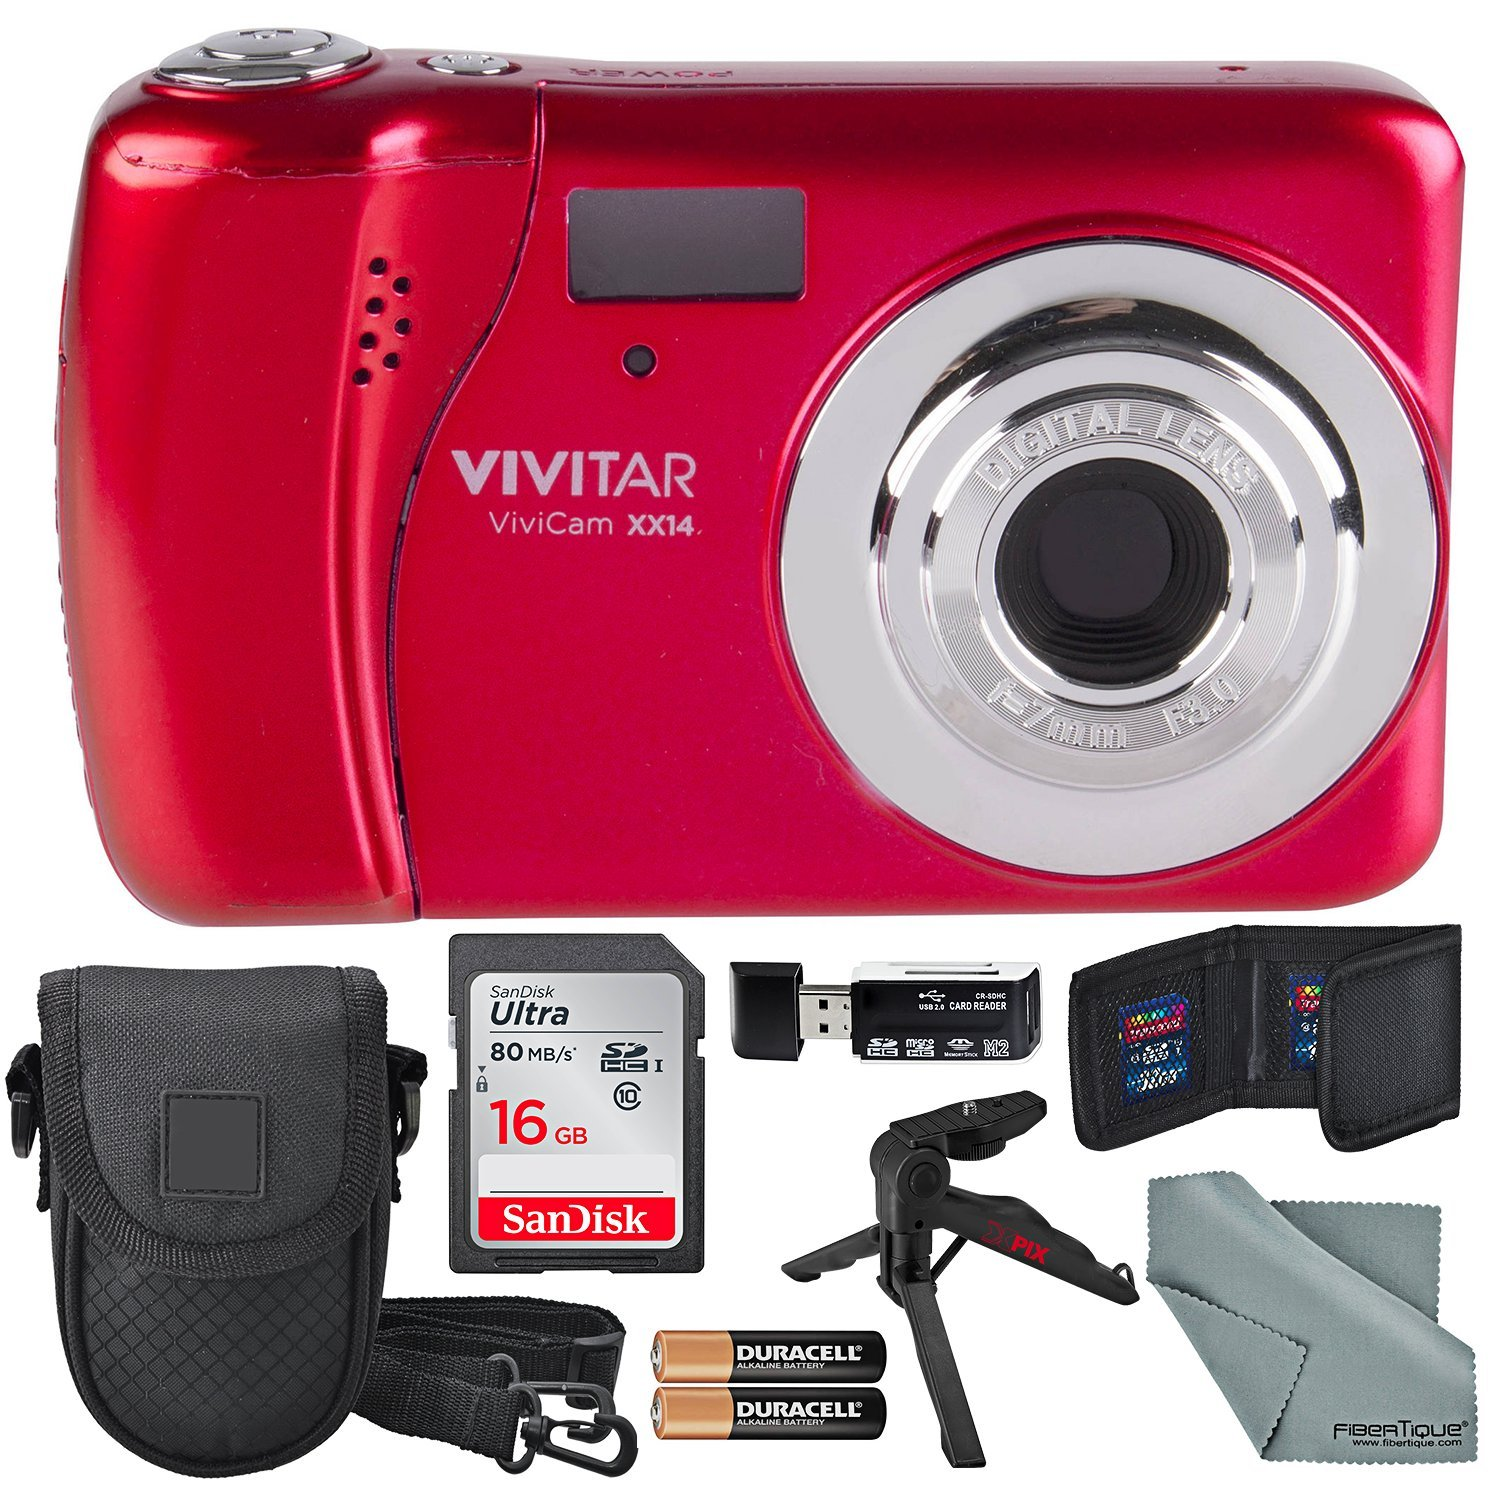 Vivitar ViviCam XX14 Digital Camera (Red) and Accessory Bundle W/ 16GB + Card Reader + Case + Xpix Tripod + Fiberitque Cleaning Cloth + Batteries + Memory Card Wallet